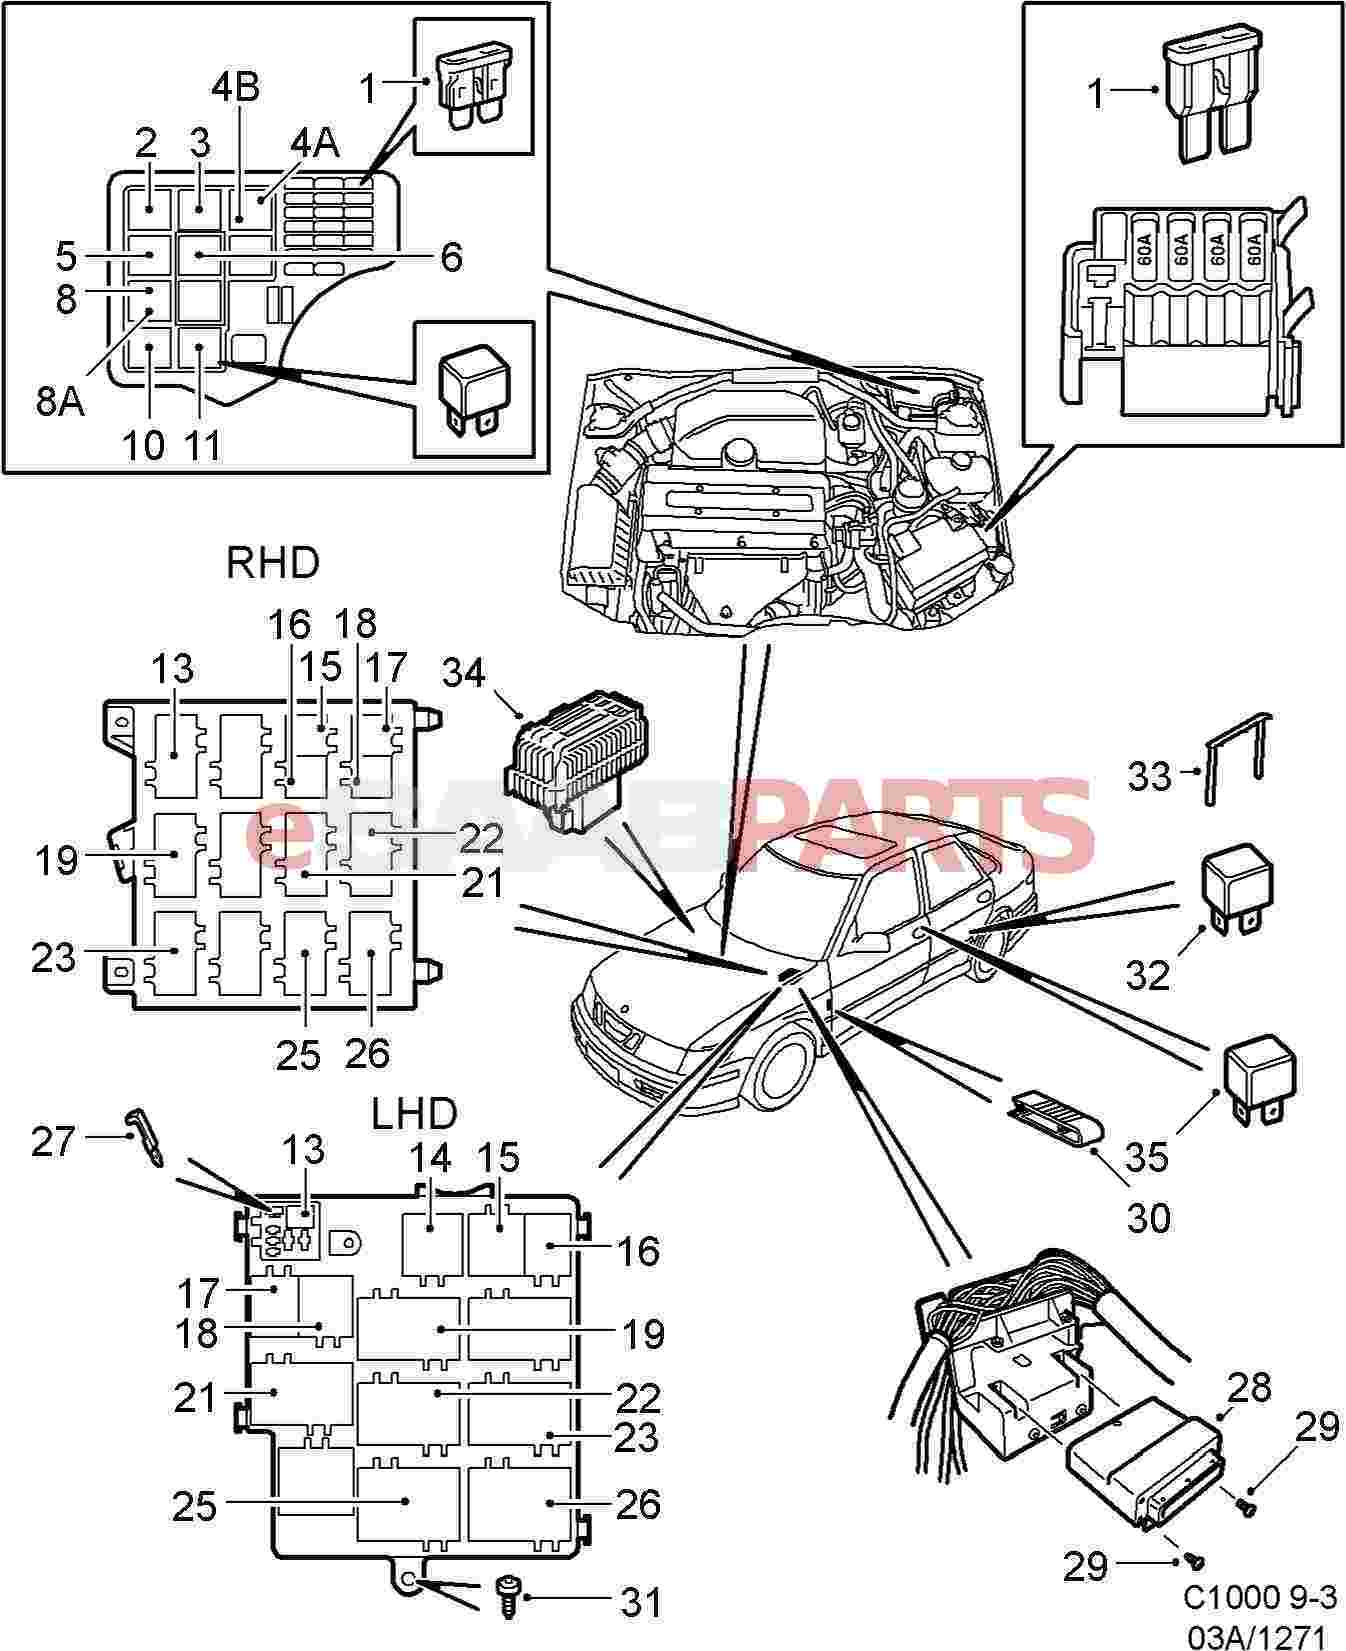 2004 Saab 9 3 Speaker Wire Diagram. Saab. Auto Wiring Diagram